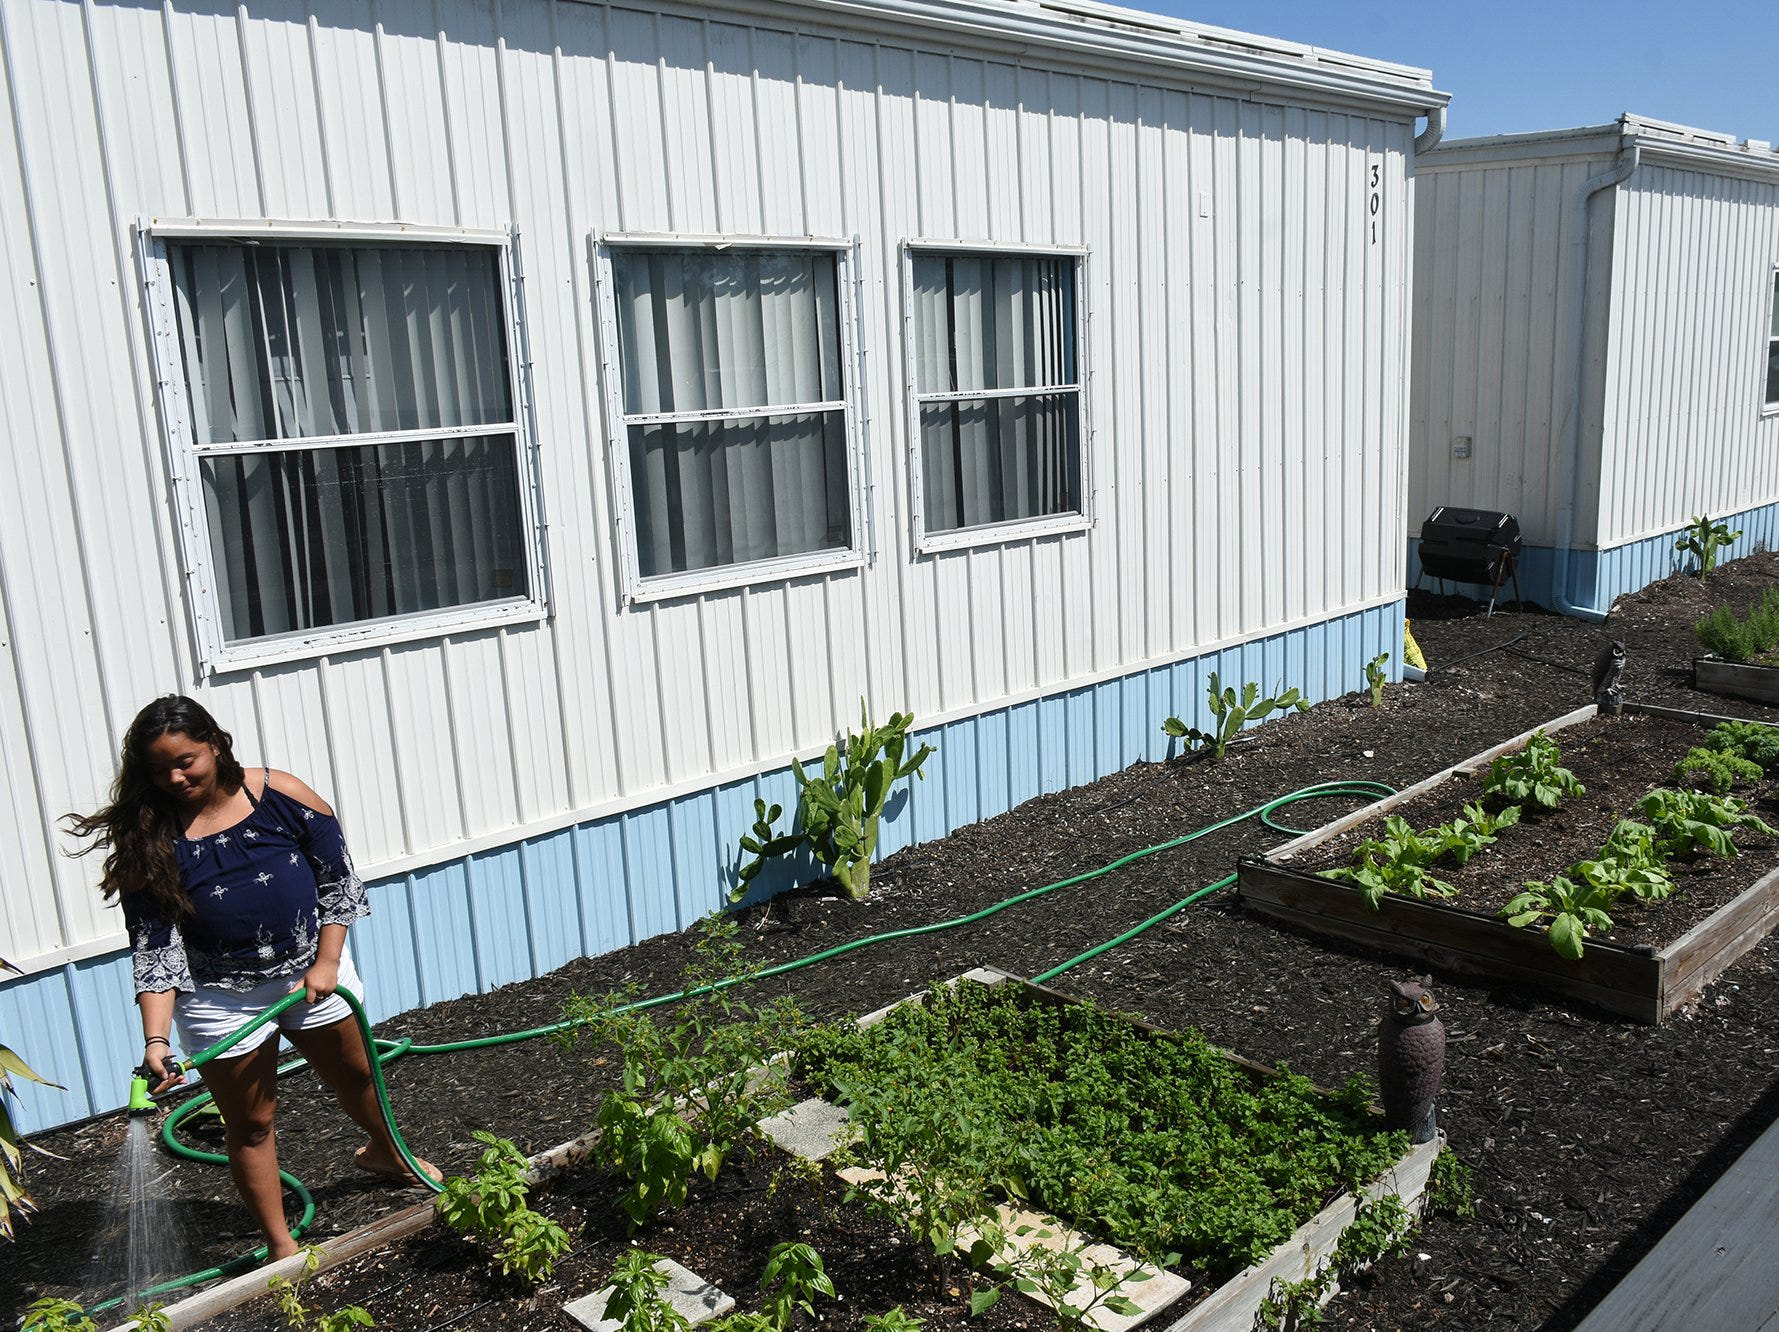 Junior Marissa Roach waters a garden in front of temporary classroom buildings. Marco Island Academy is embarking on a capital campaign to raise millions of dollars and give the school a permanent home, after years of operating in prefab modules.